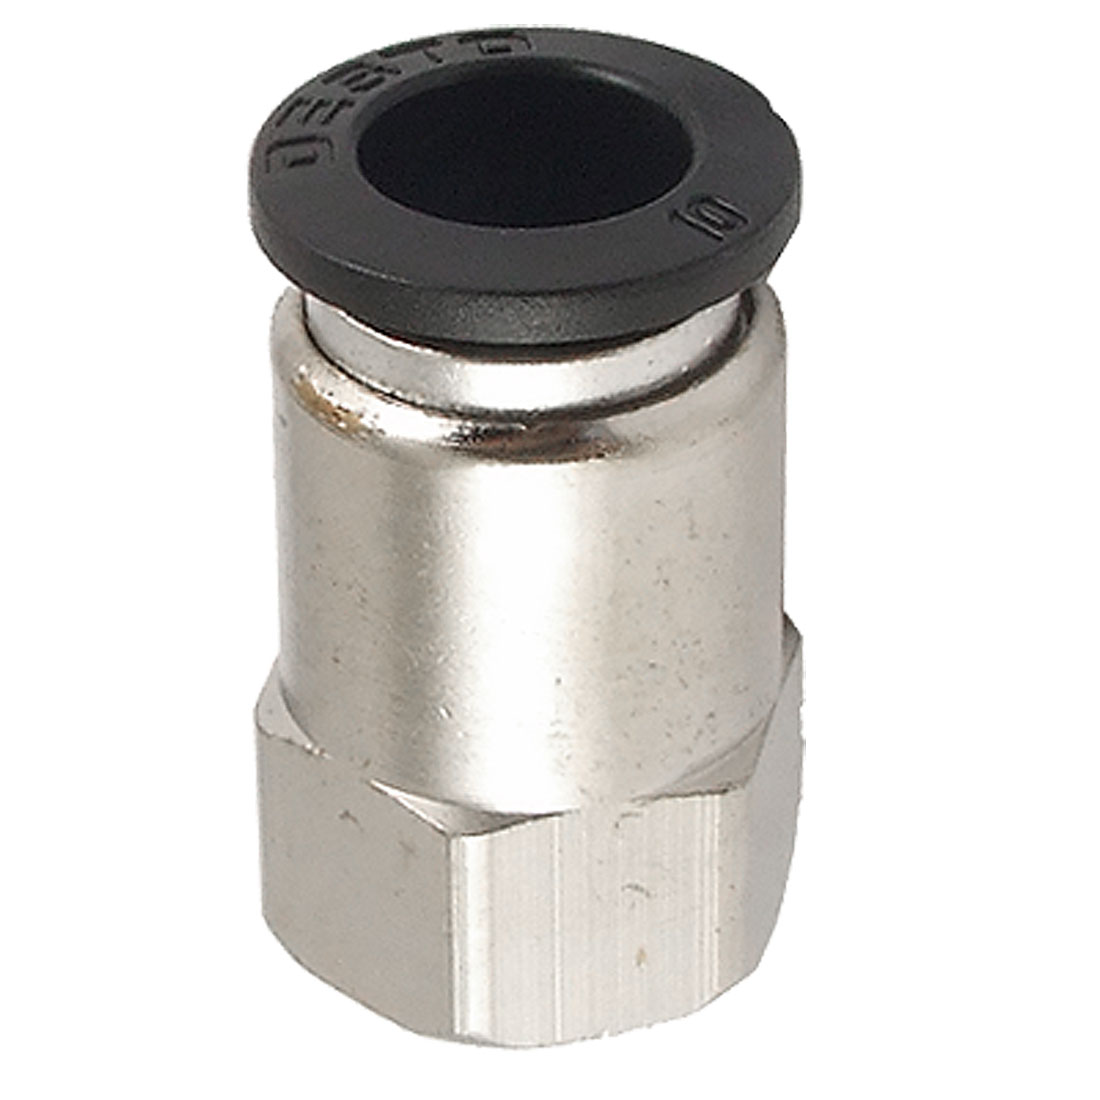 8mm Female Thread Pneumatic Fitting Quick Coupling for 8mm OD Tube